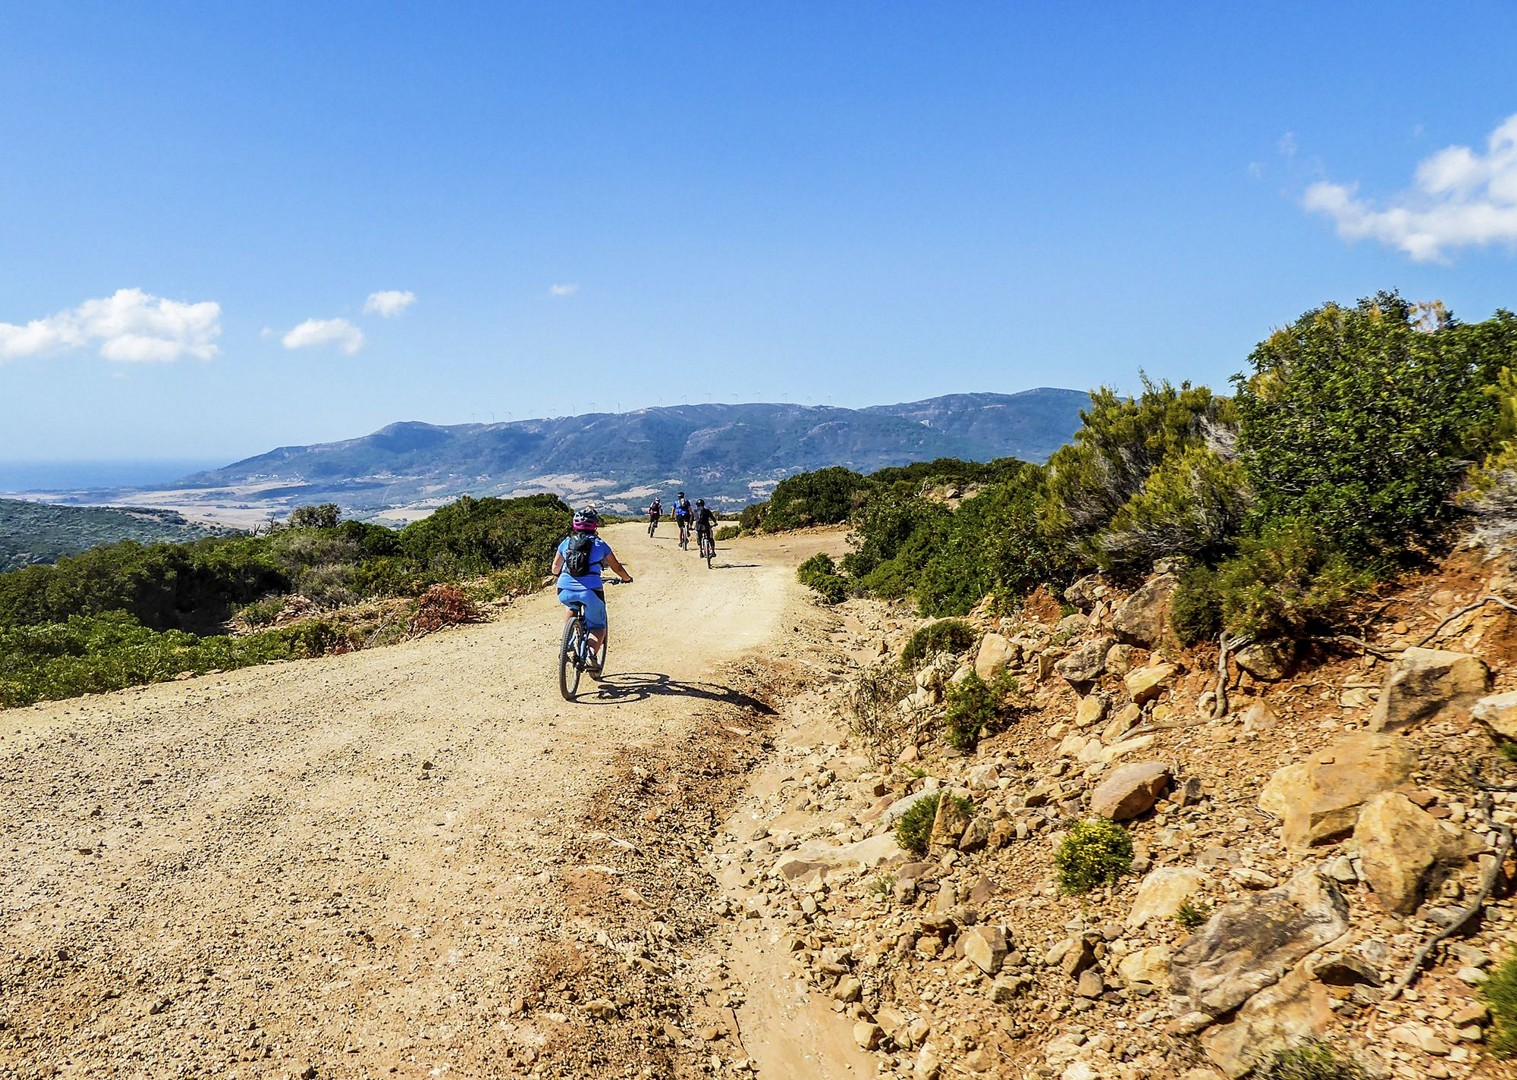 rocky-chutes-el-chorro-spain-mountain-biking-skedaddle.jpg - Spain - Awesome Andalucia - Guided Mountain Bike Holiday - Mountain Biking